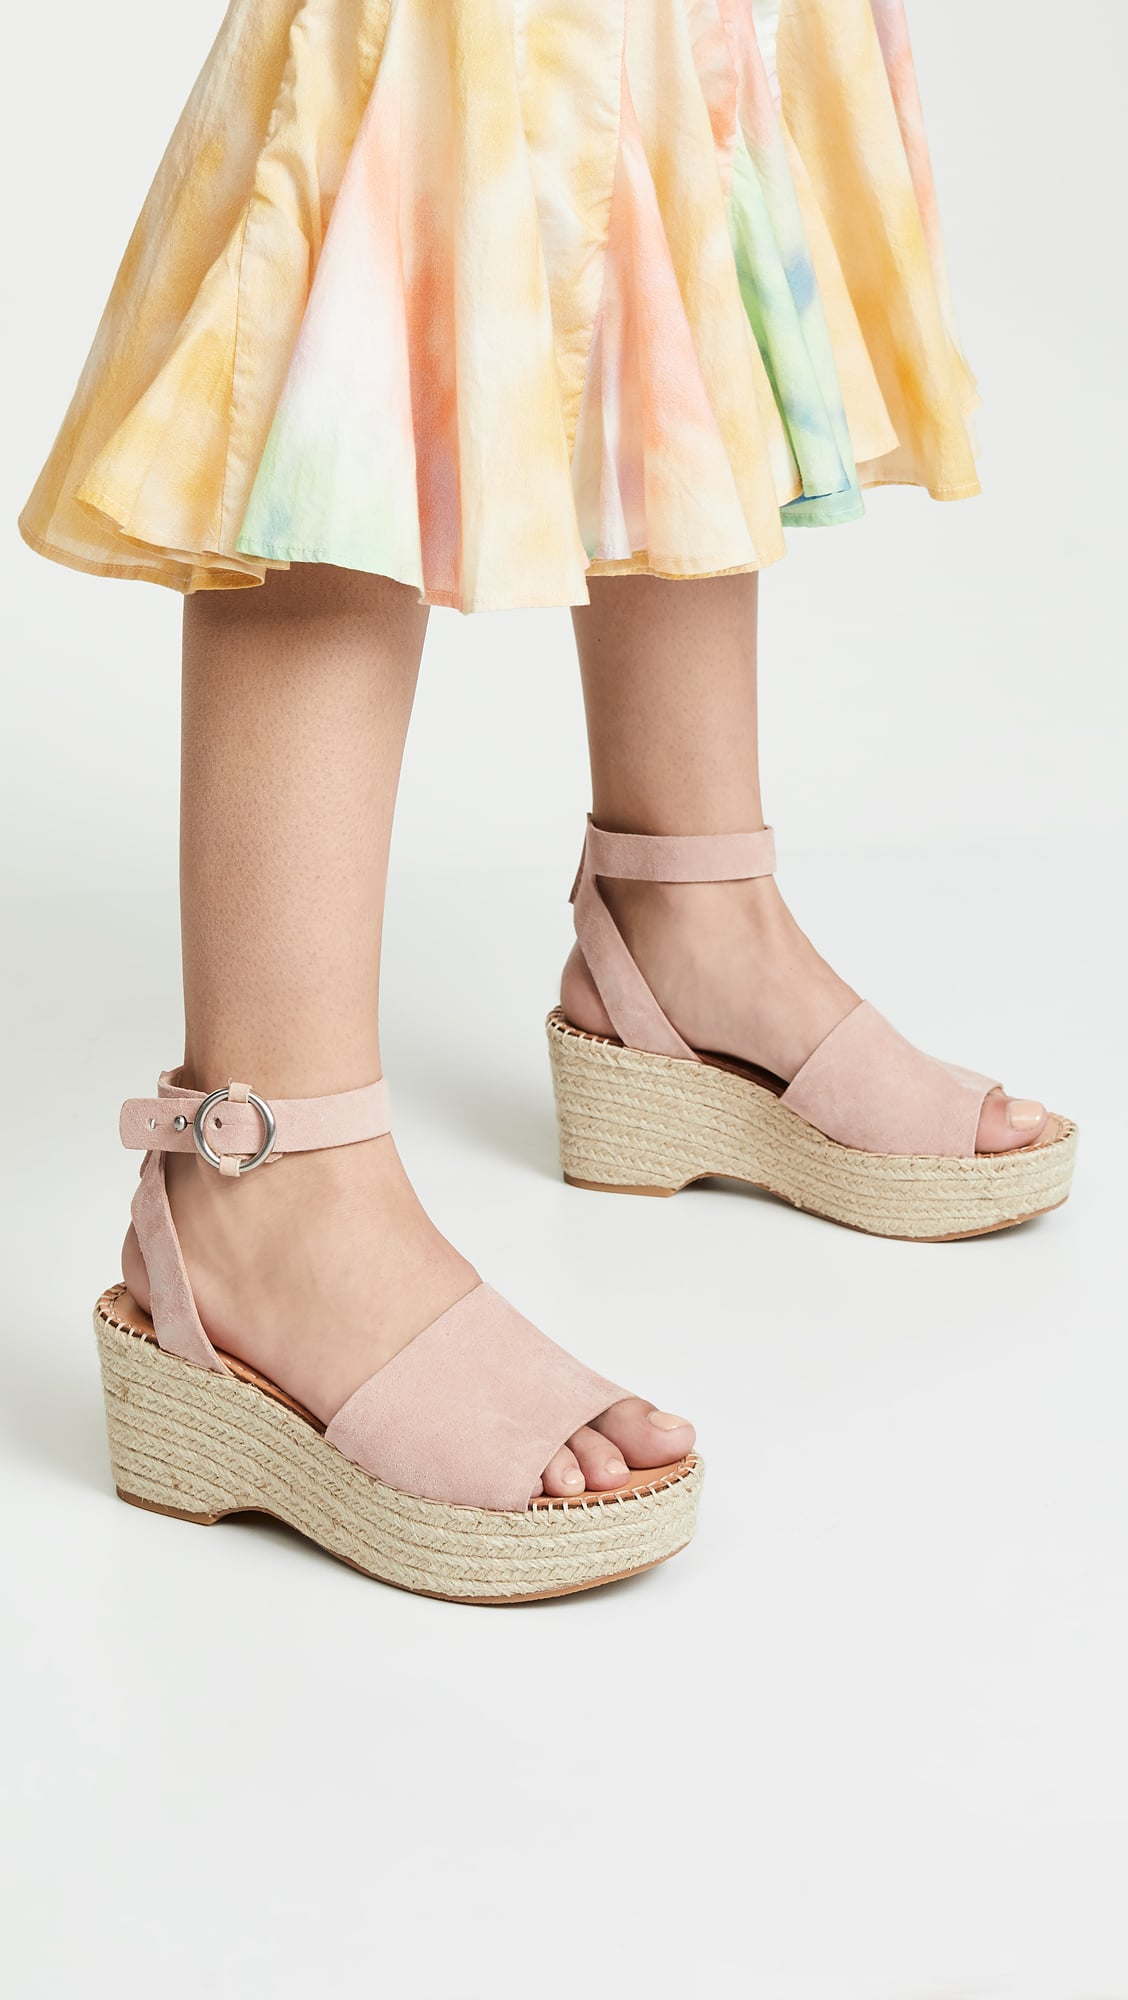 0942aa78b4b Dolce Vita Lesly Ankle Strap Espadrilles | The 103 Best Shoes of ...